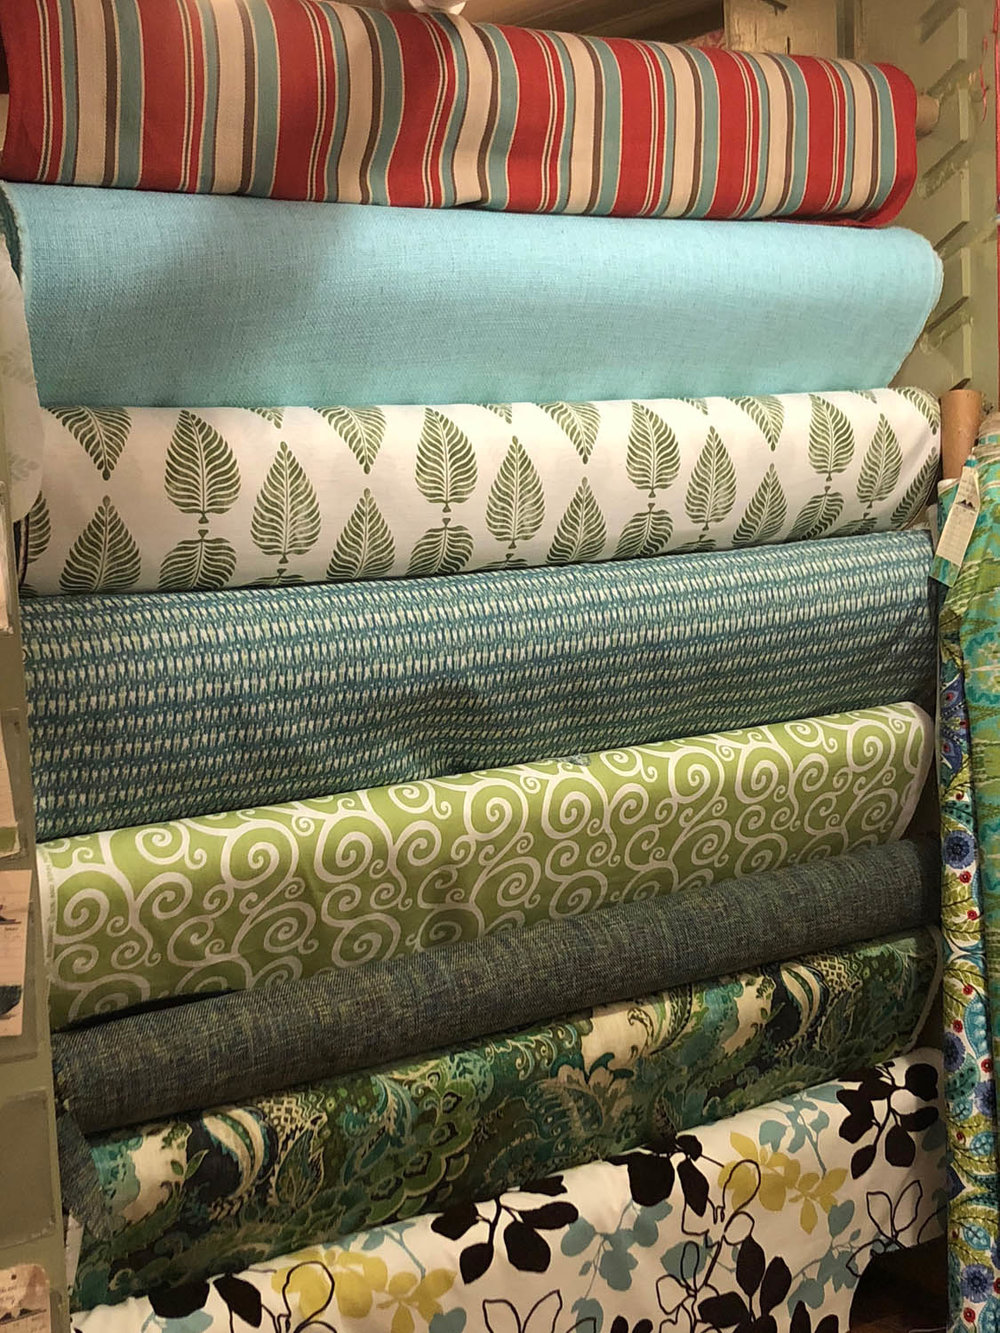 Fabric rolls at Trolly's Designer Fabrics LLC